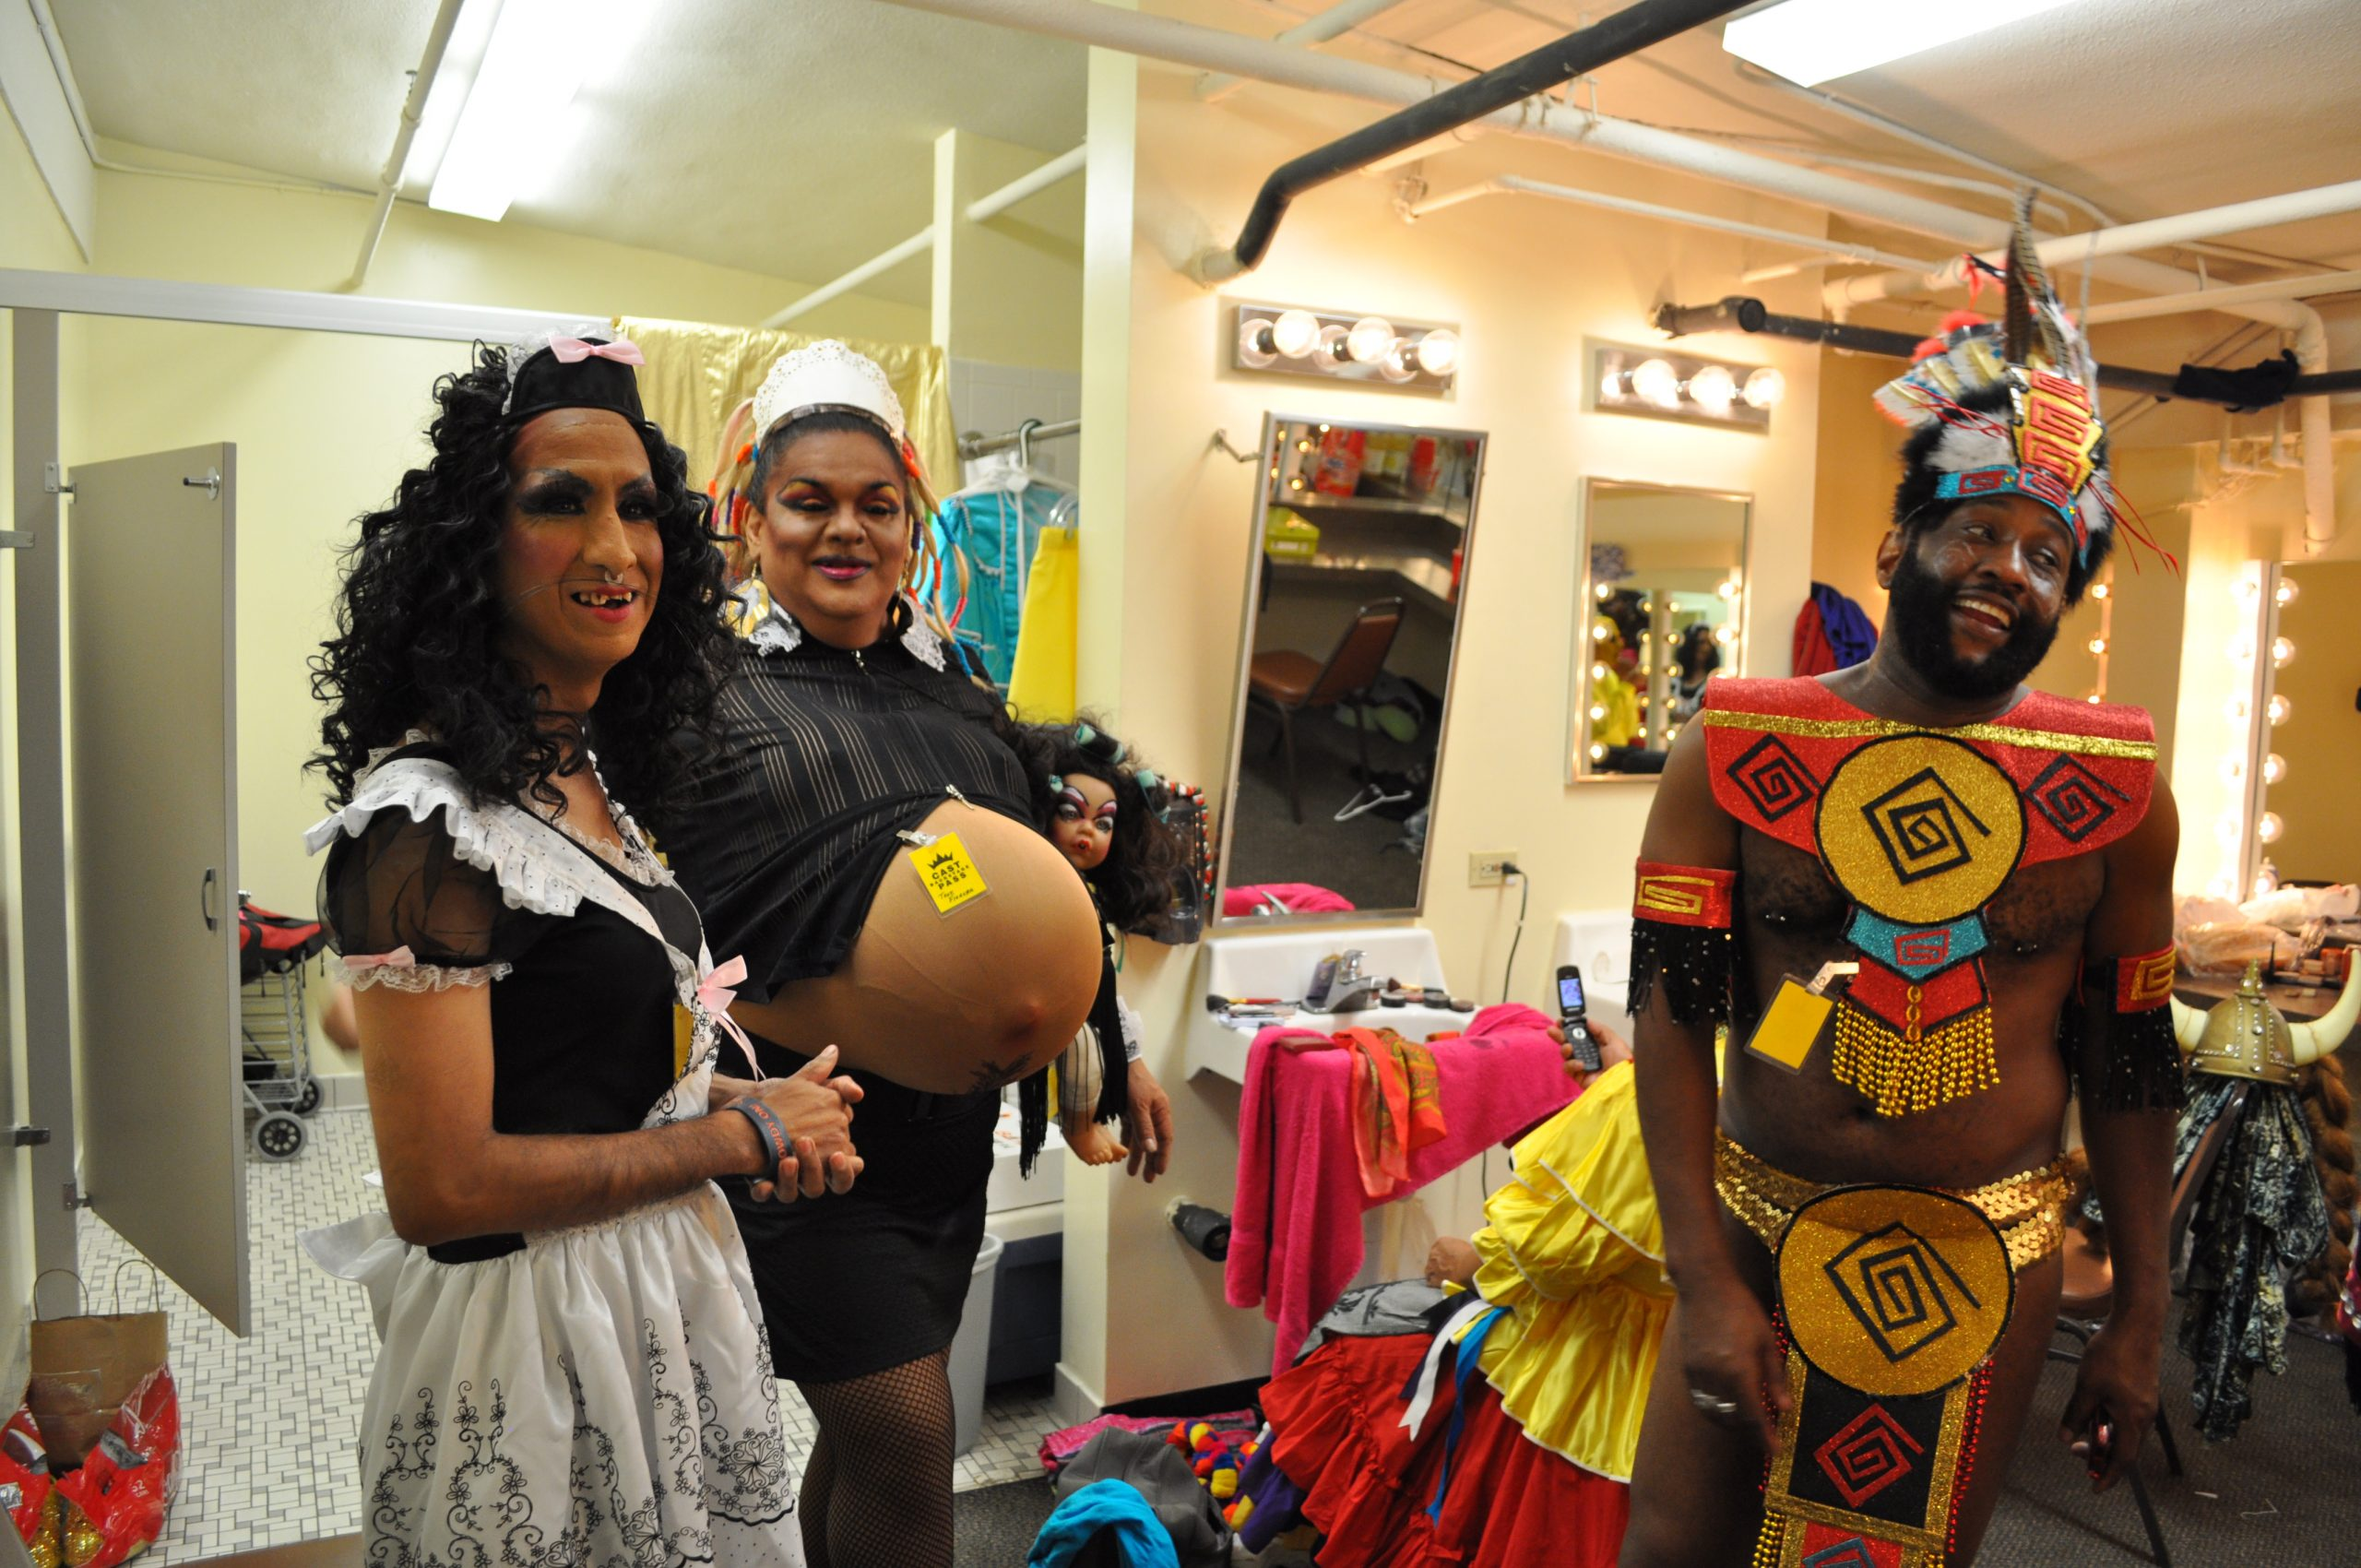 Costumed men relax and chat in dressing rooms before their Cornyation performances on stage at the Empire Theatre. Photo by Iris Dimmick.